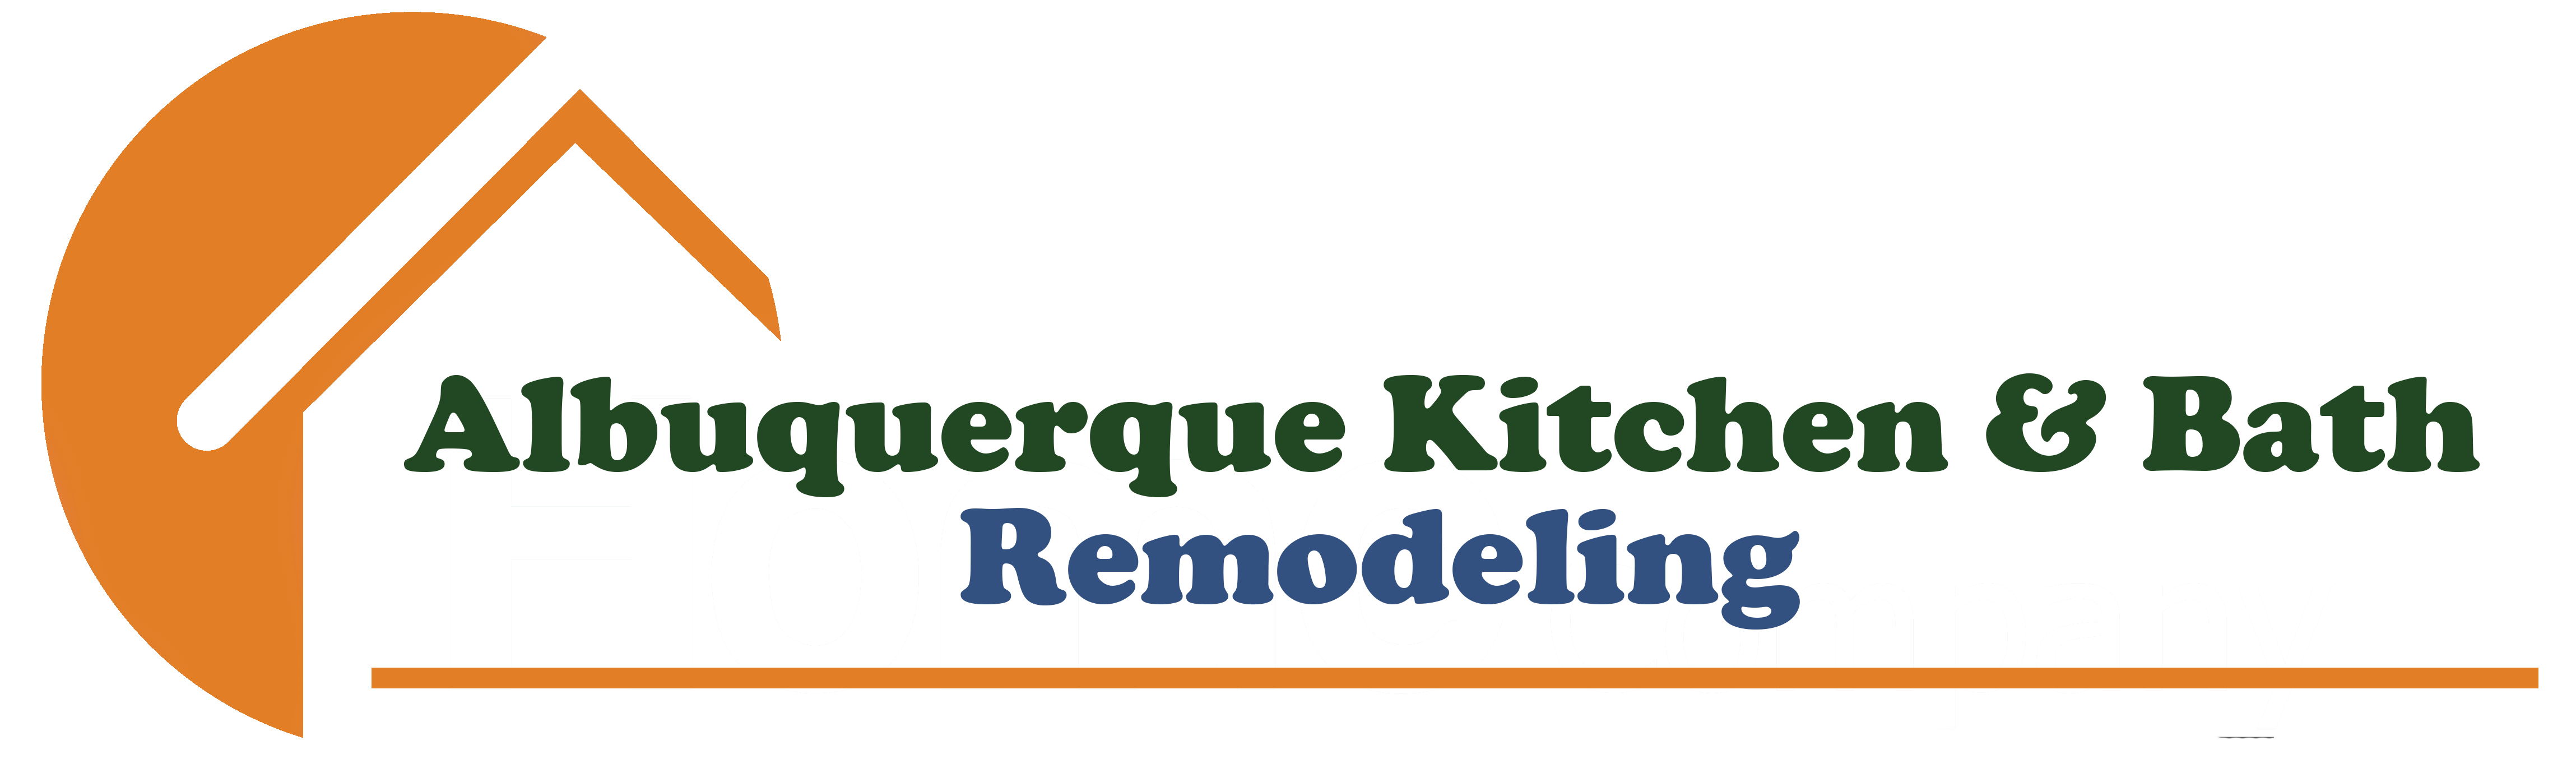 Reliable & Professional | Albuquerque Kitchen & Bath